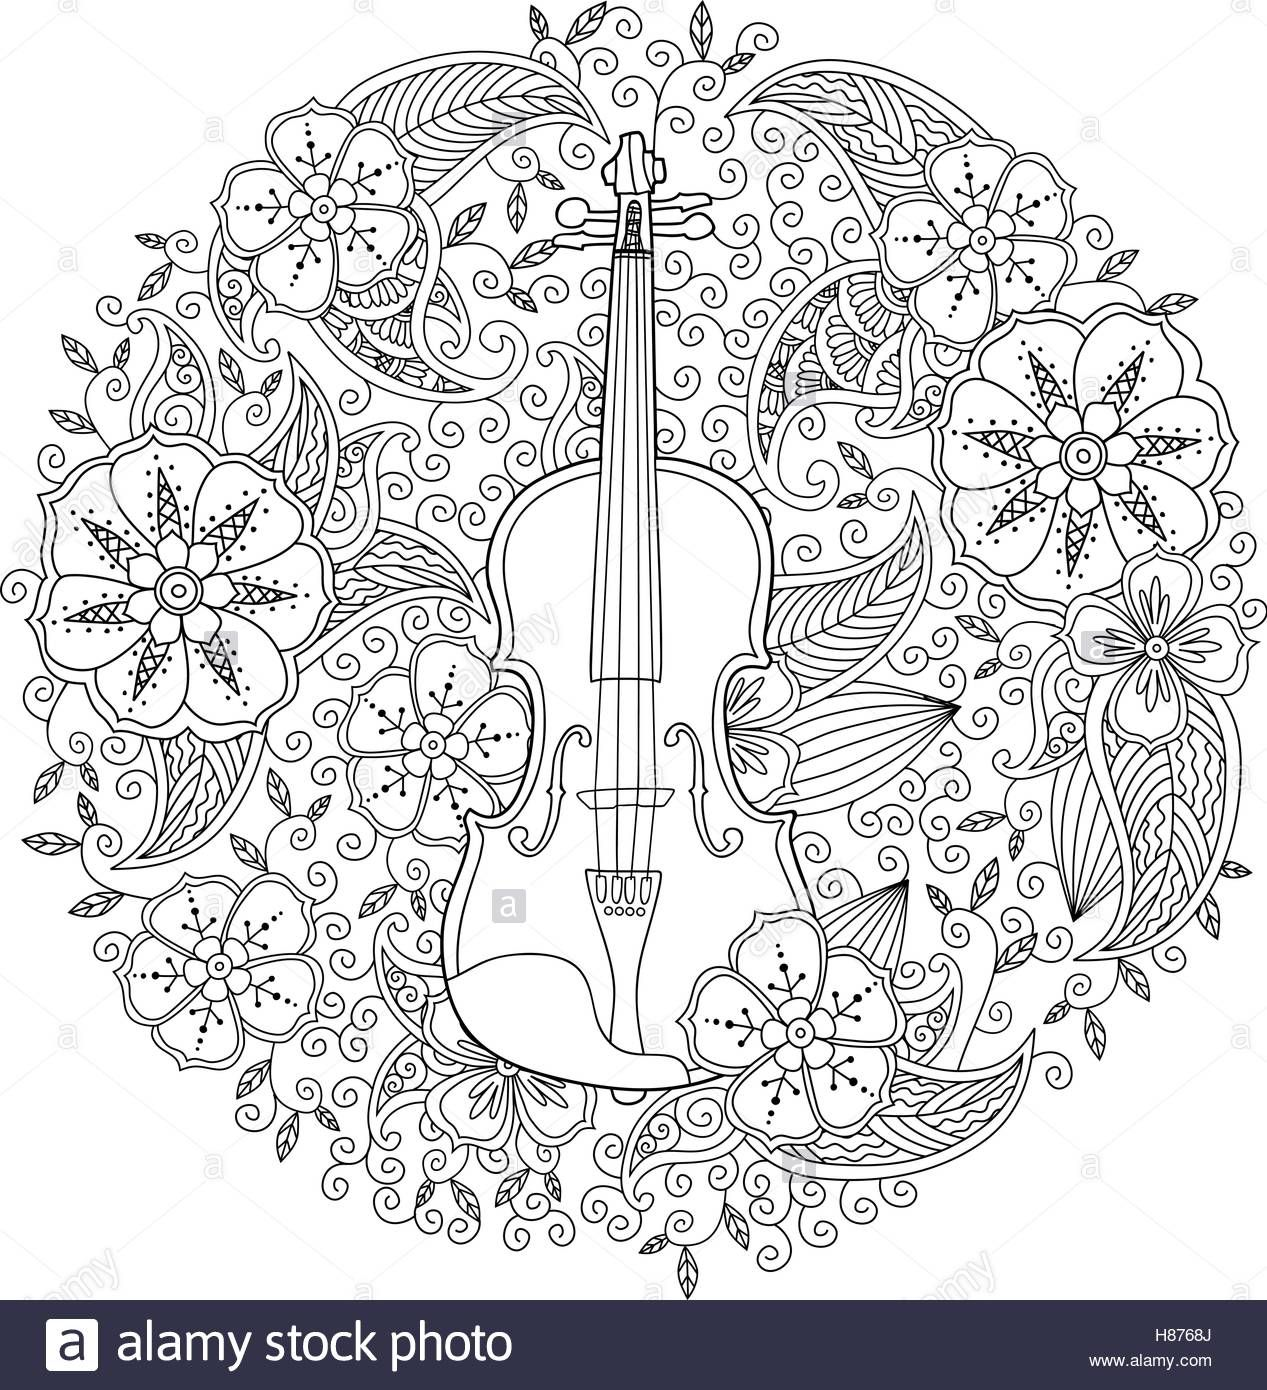 Download This Stock Vector Coloring Page With Ornamental Violin